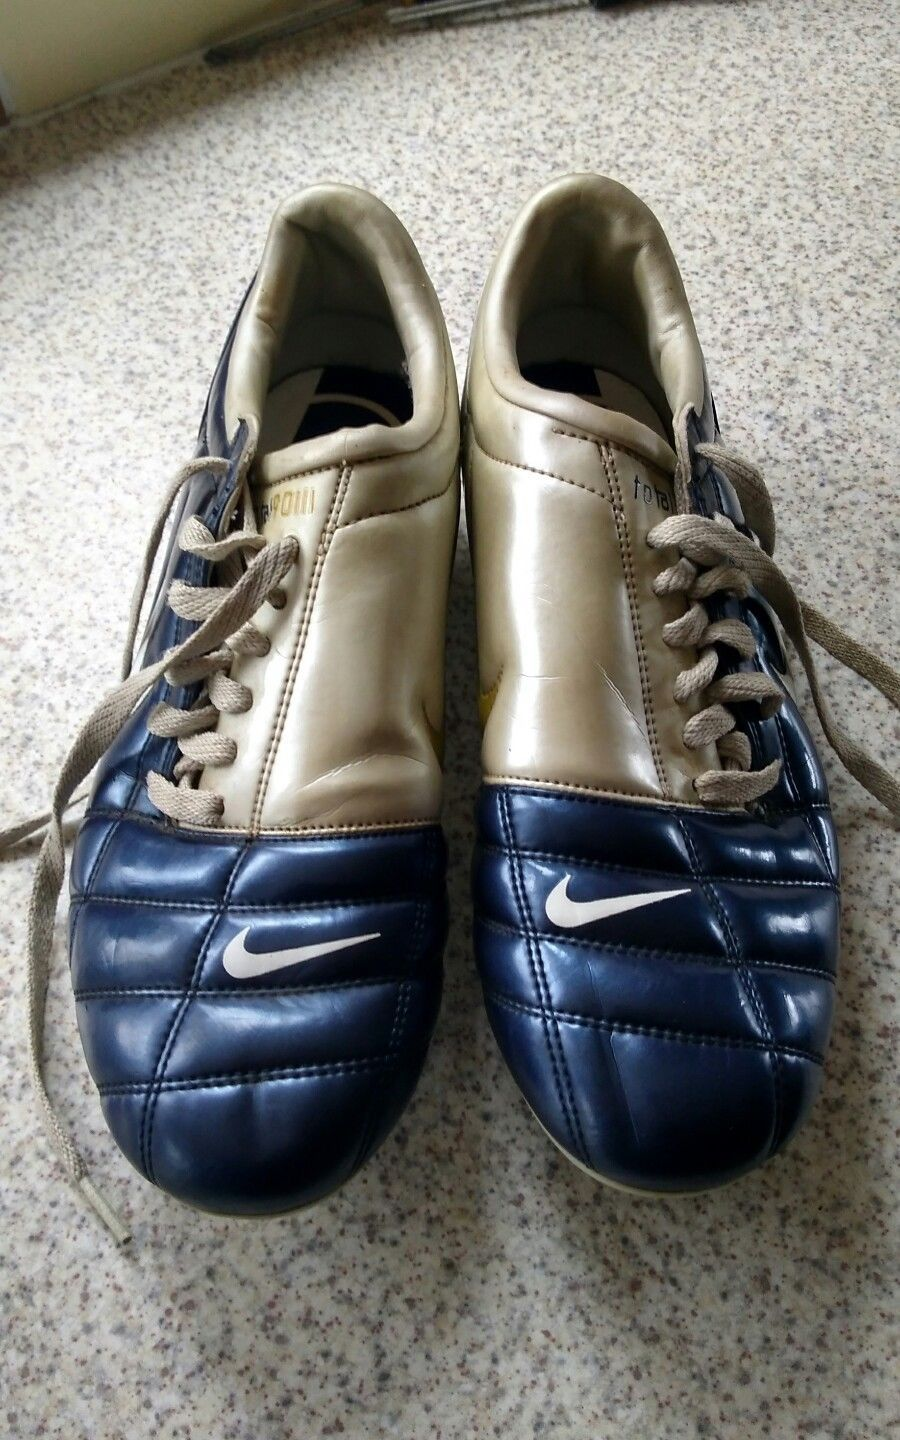 7633822851f6 Nike Total 90 football boots size 8 | SoccerMarkt Products ...